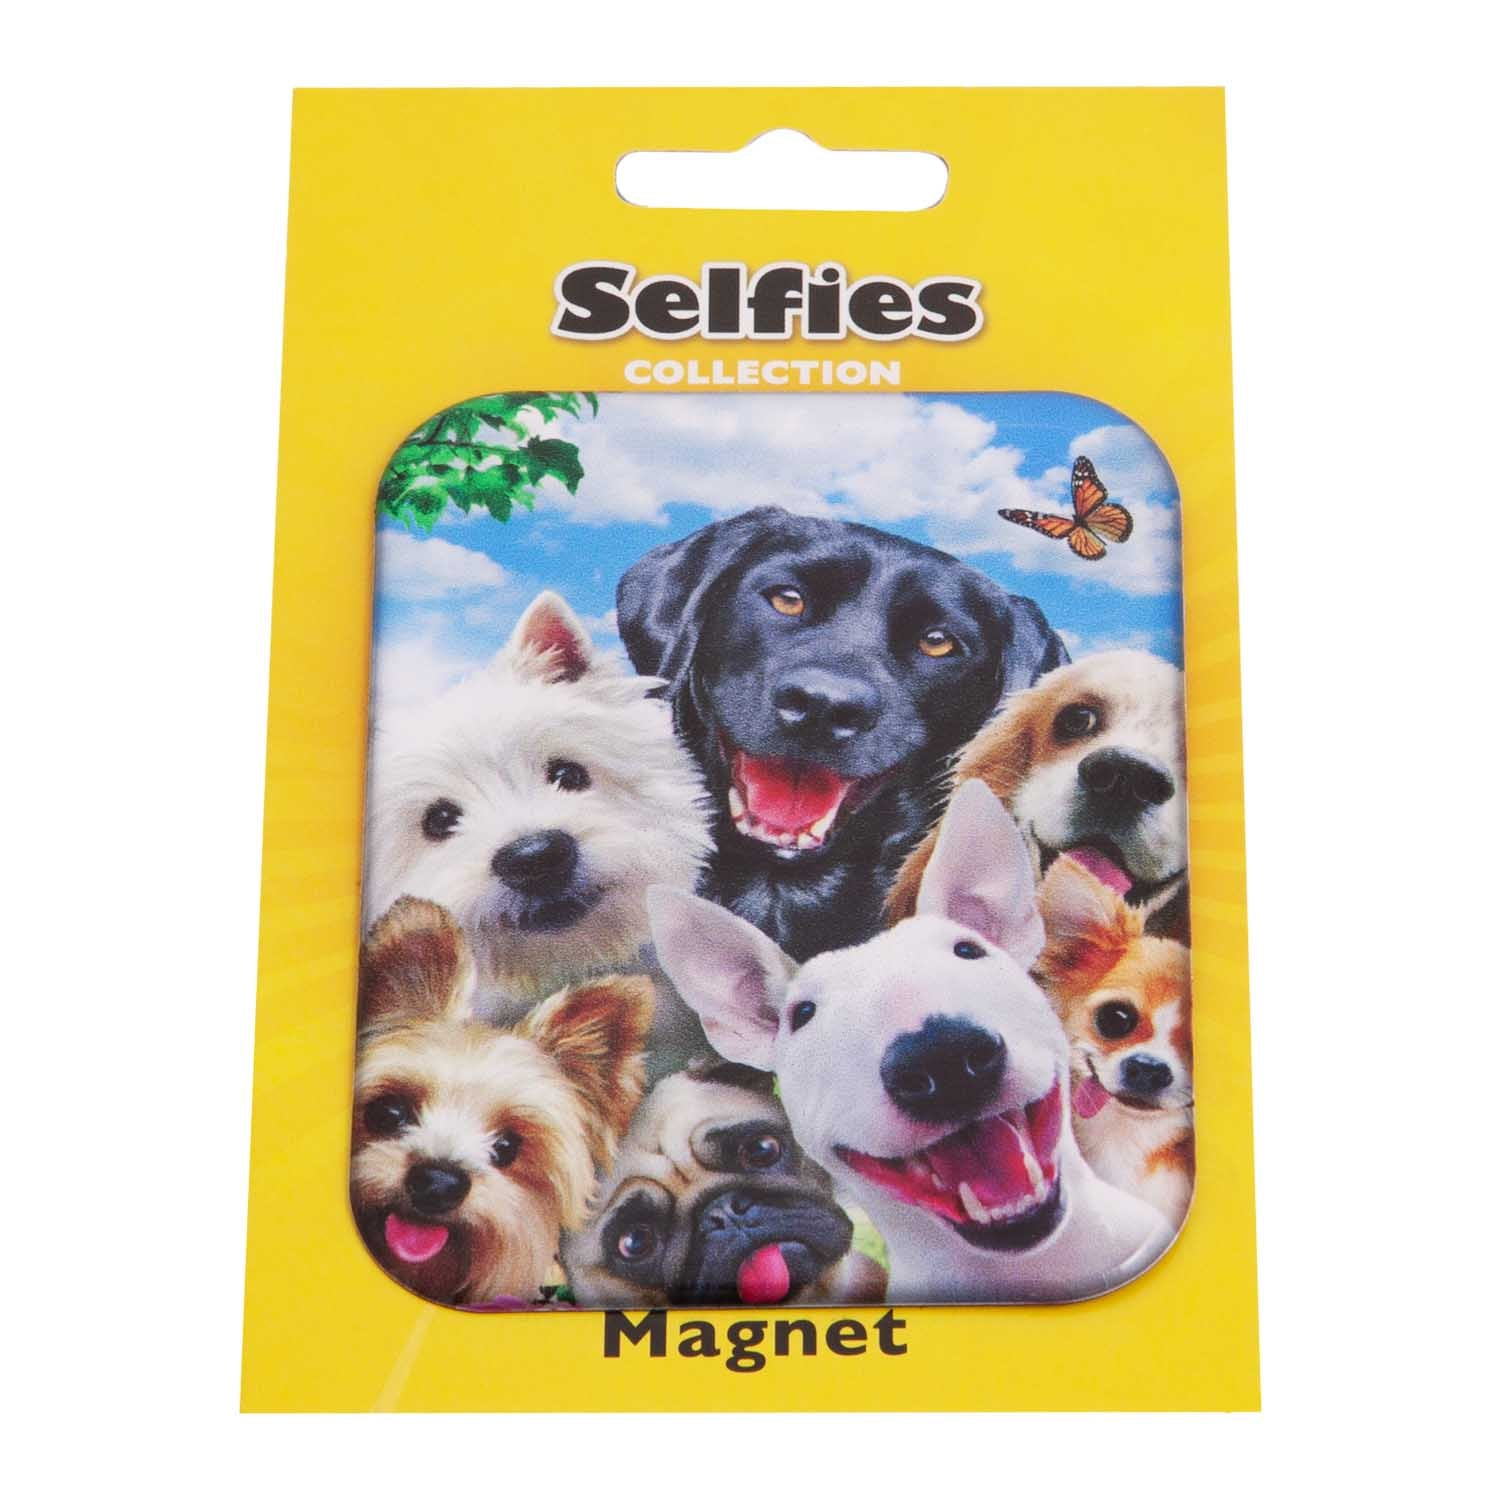 Dog Krazy Gifts - Dog Selfie Fridge Magnet part of the wide range of Dog Themed Presents available from DogKrazyGifts.co.uk